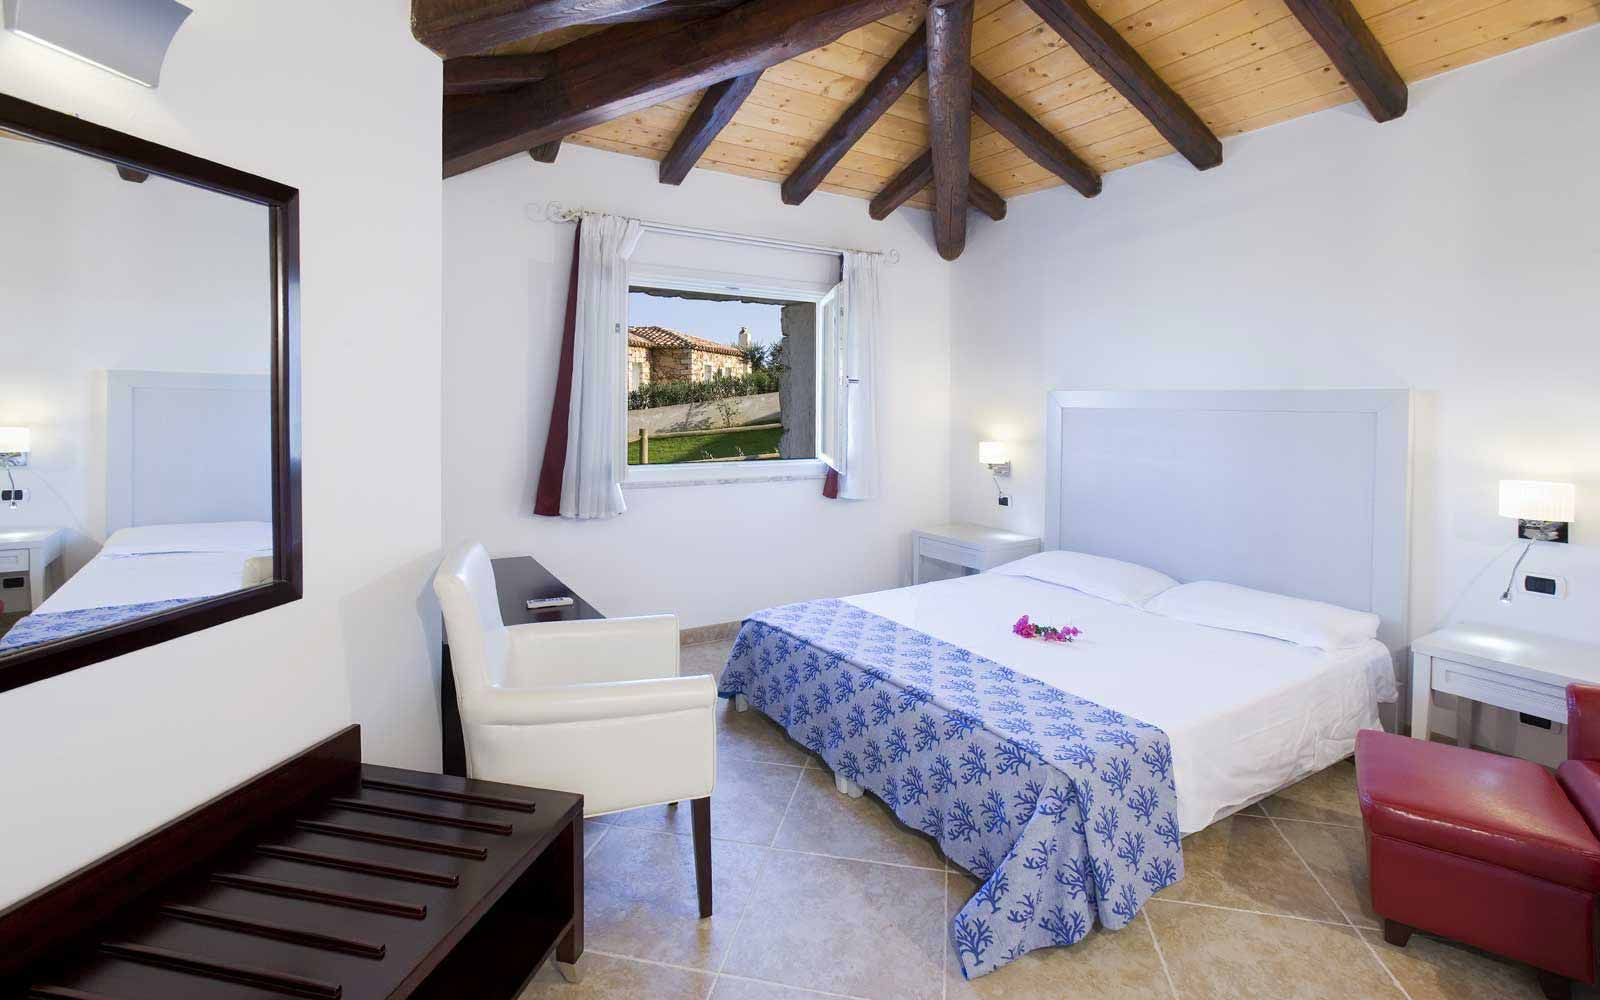 A bedroom in Villa Quercia at Hotel Villas Resort - Villas